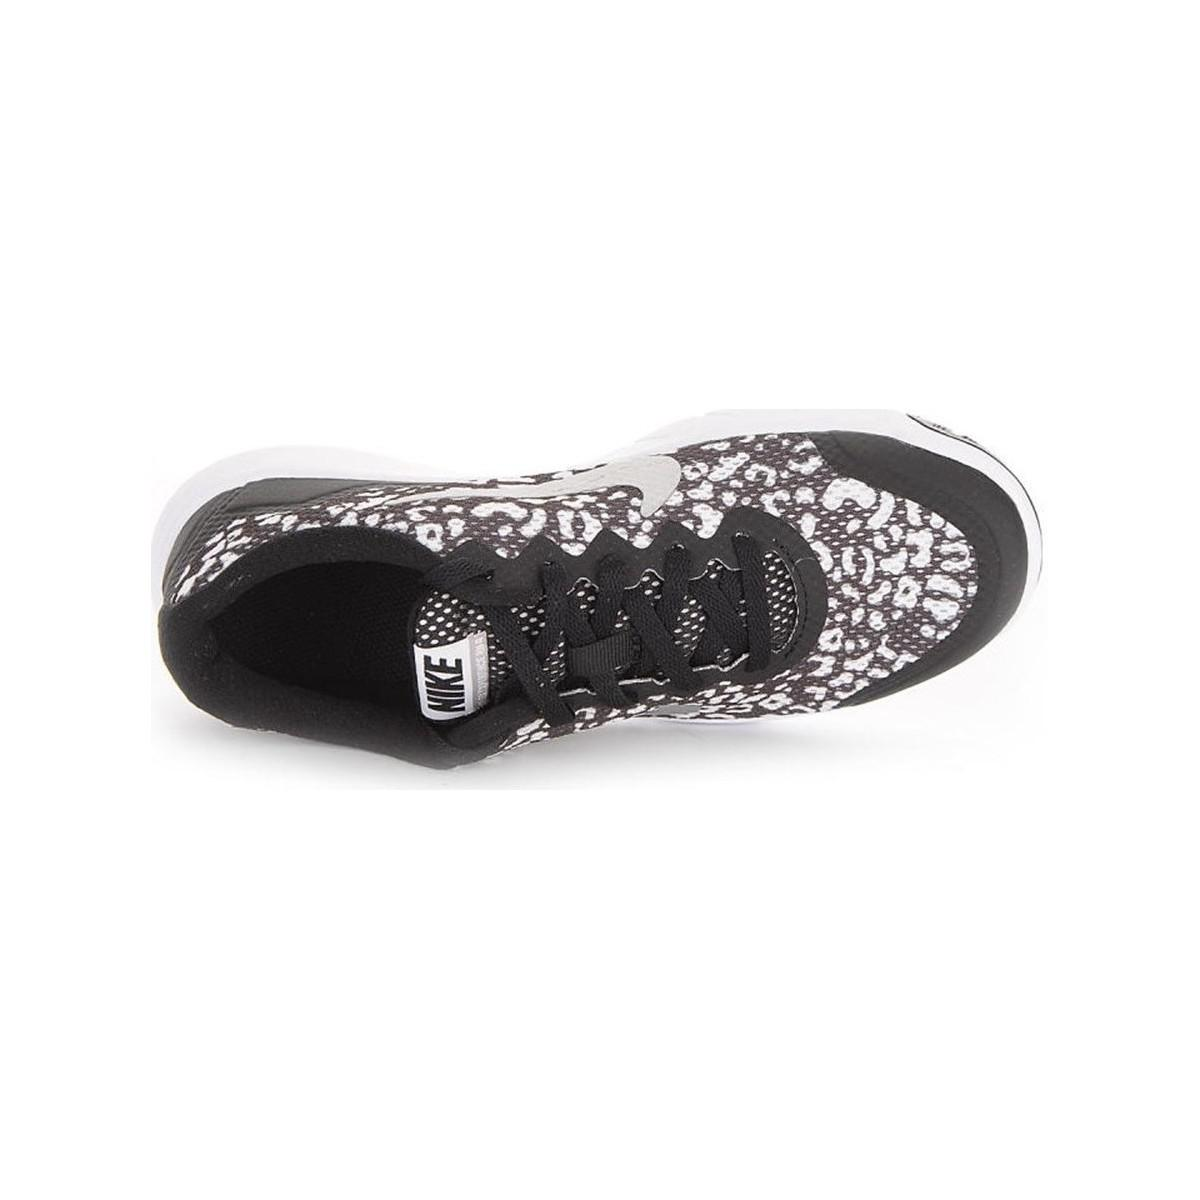 Nike Flex Experience 4 Print Gs Women's Shoes (trainers) In Black